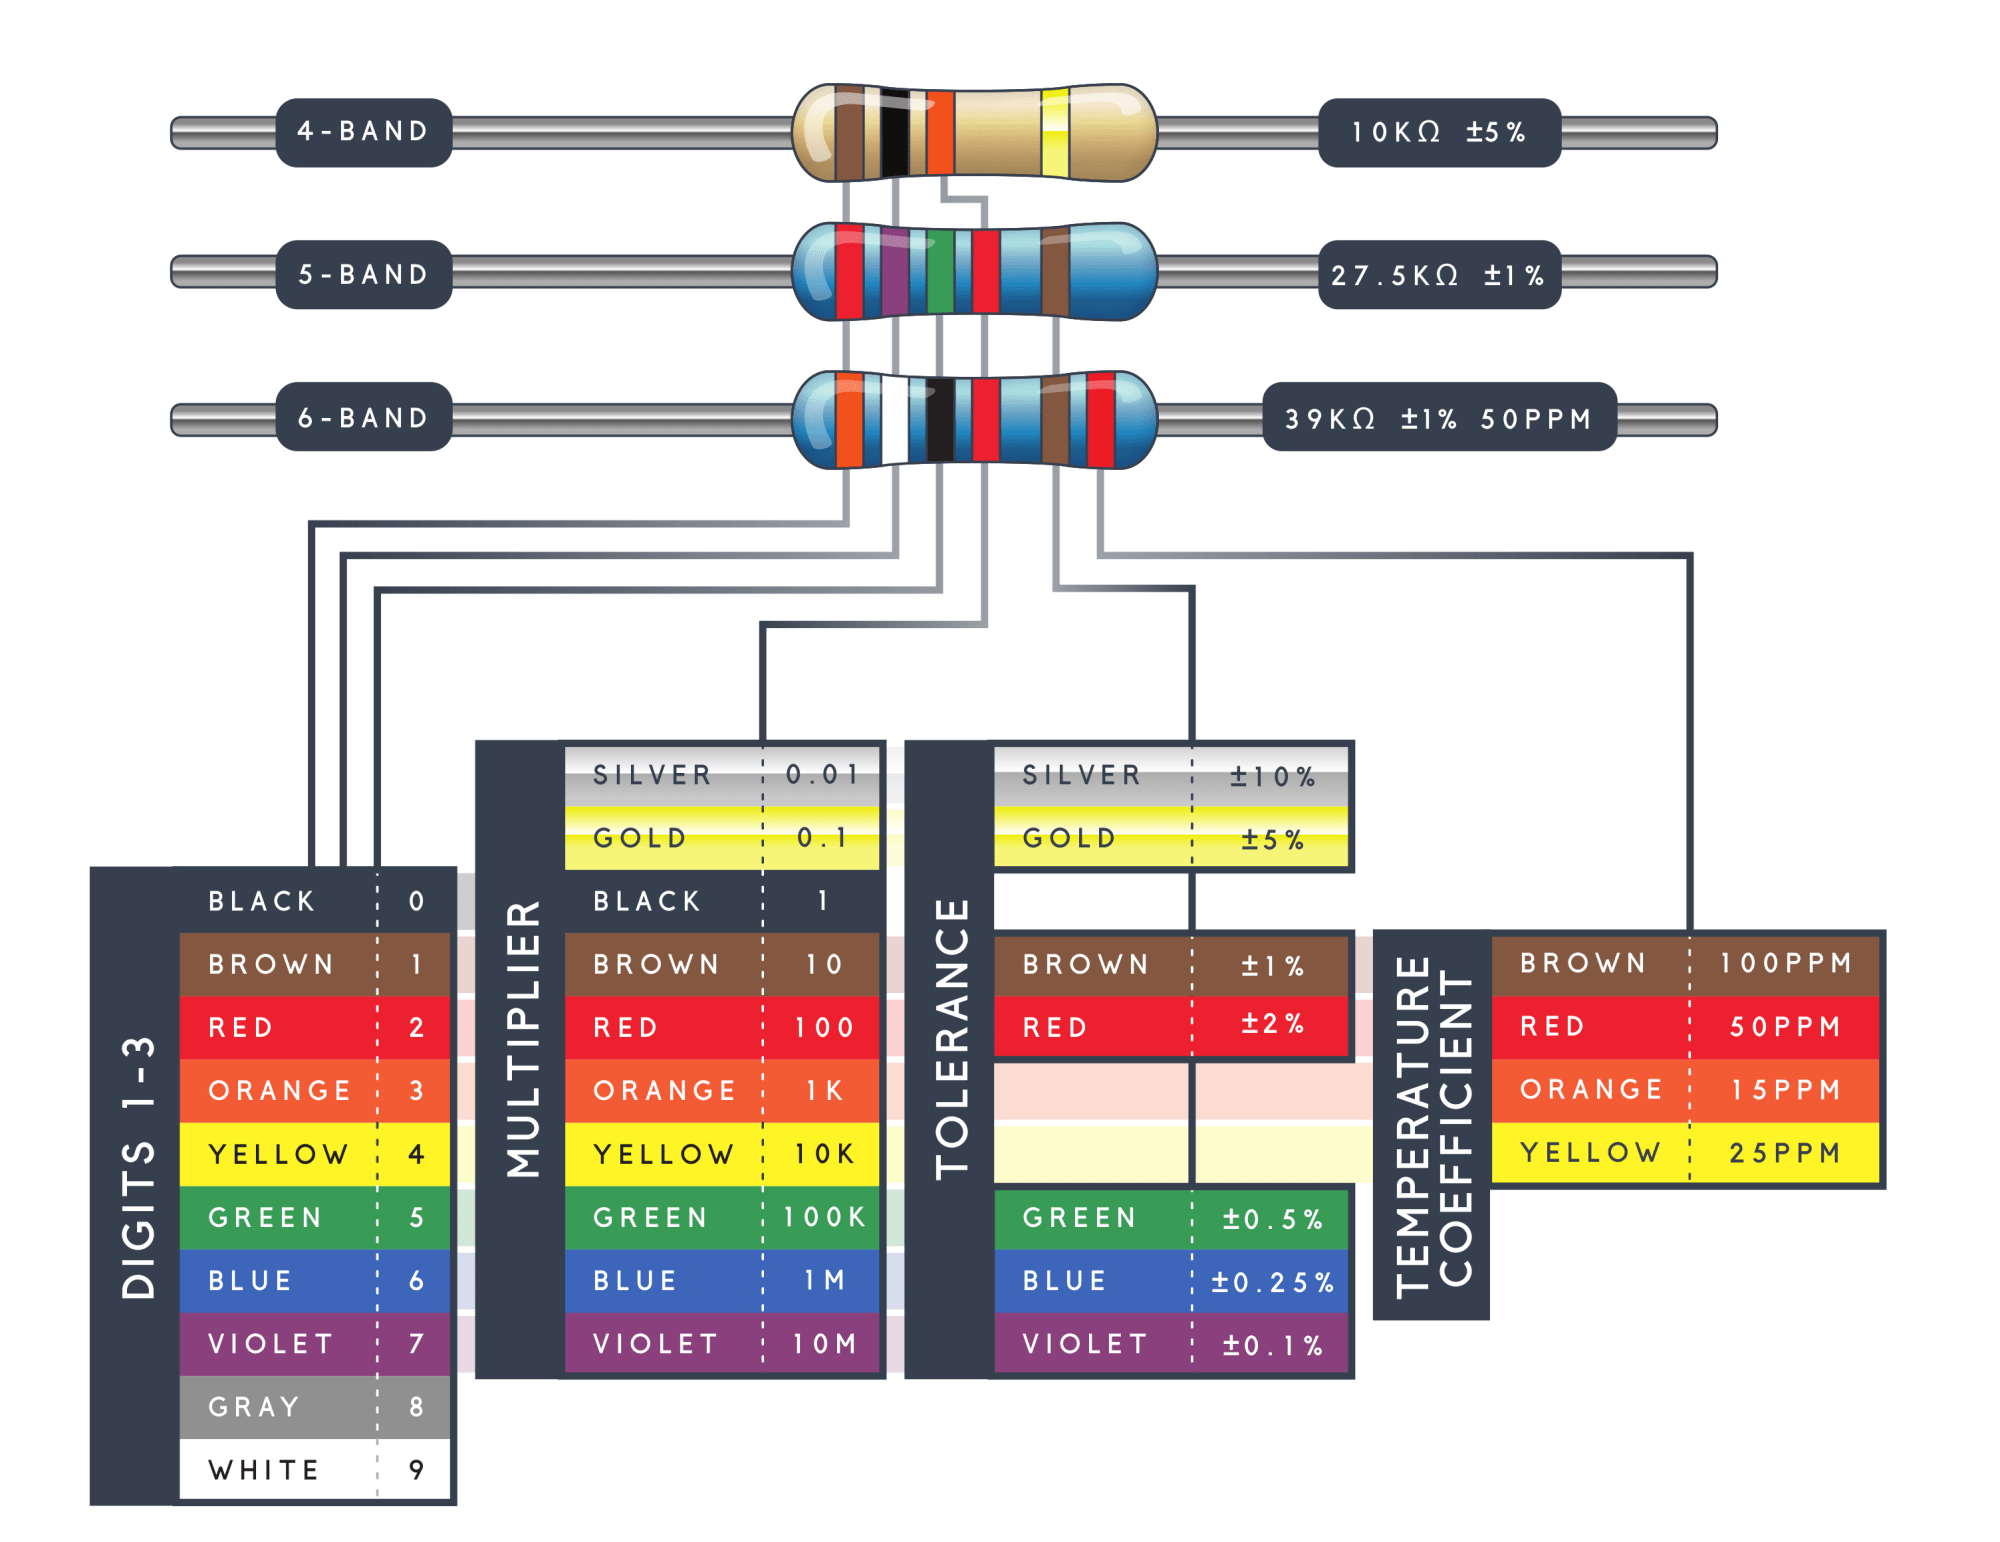 hight resolution of image of 4 5 and 6 band resistors and what each band stands for